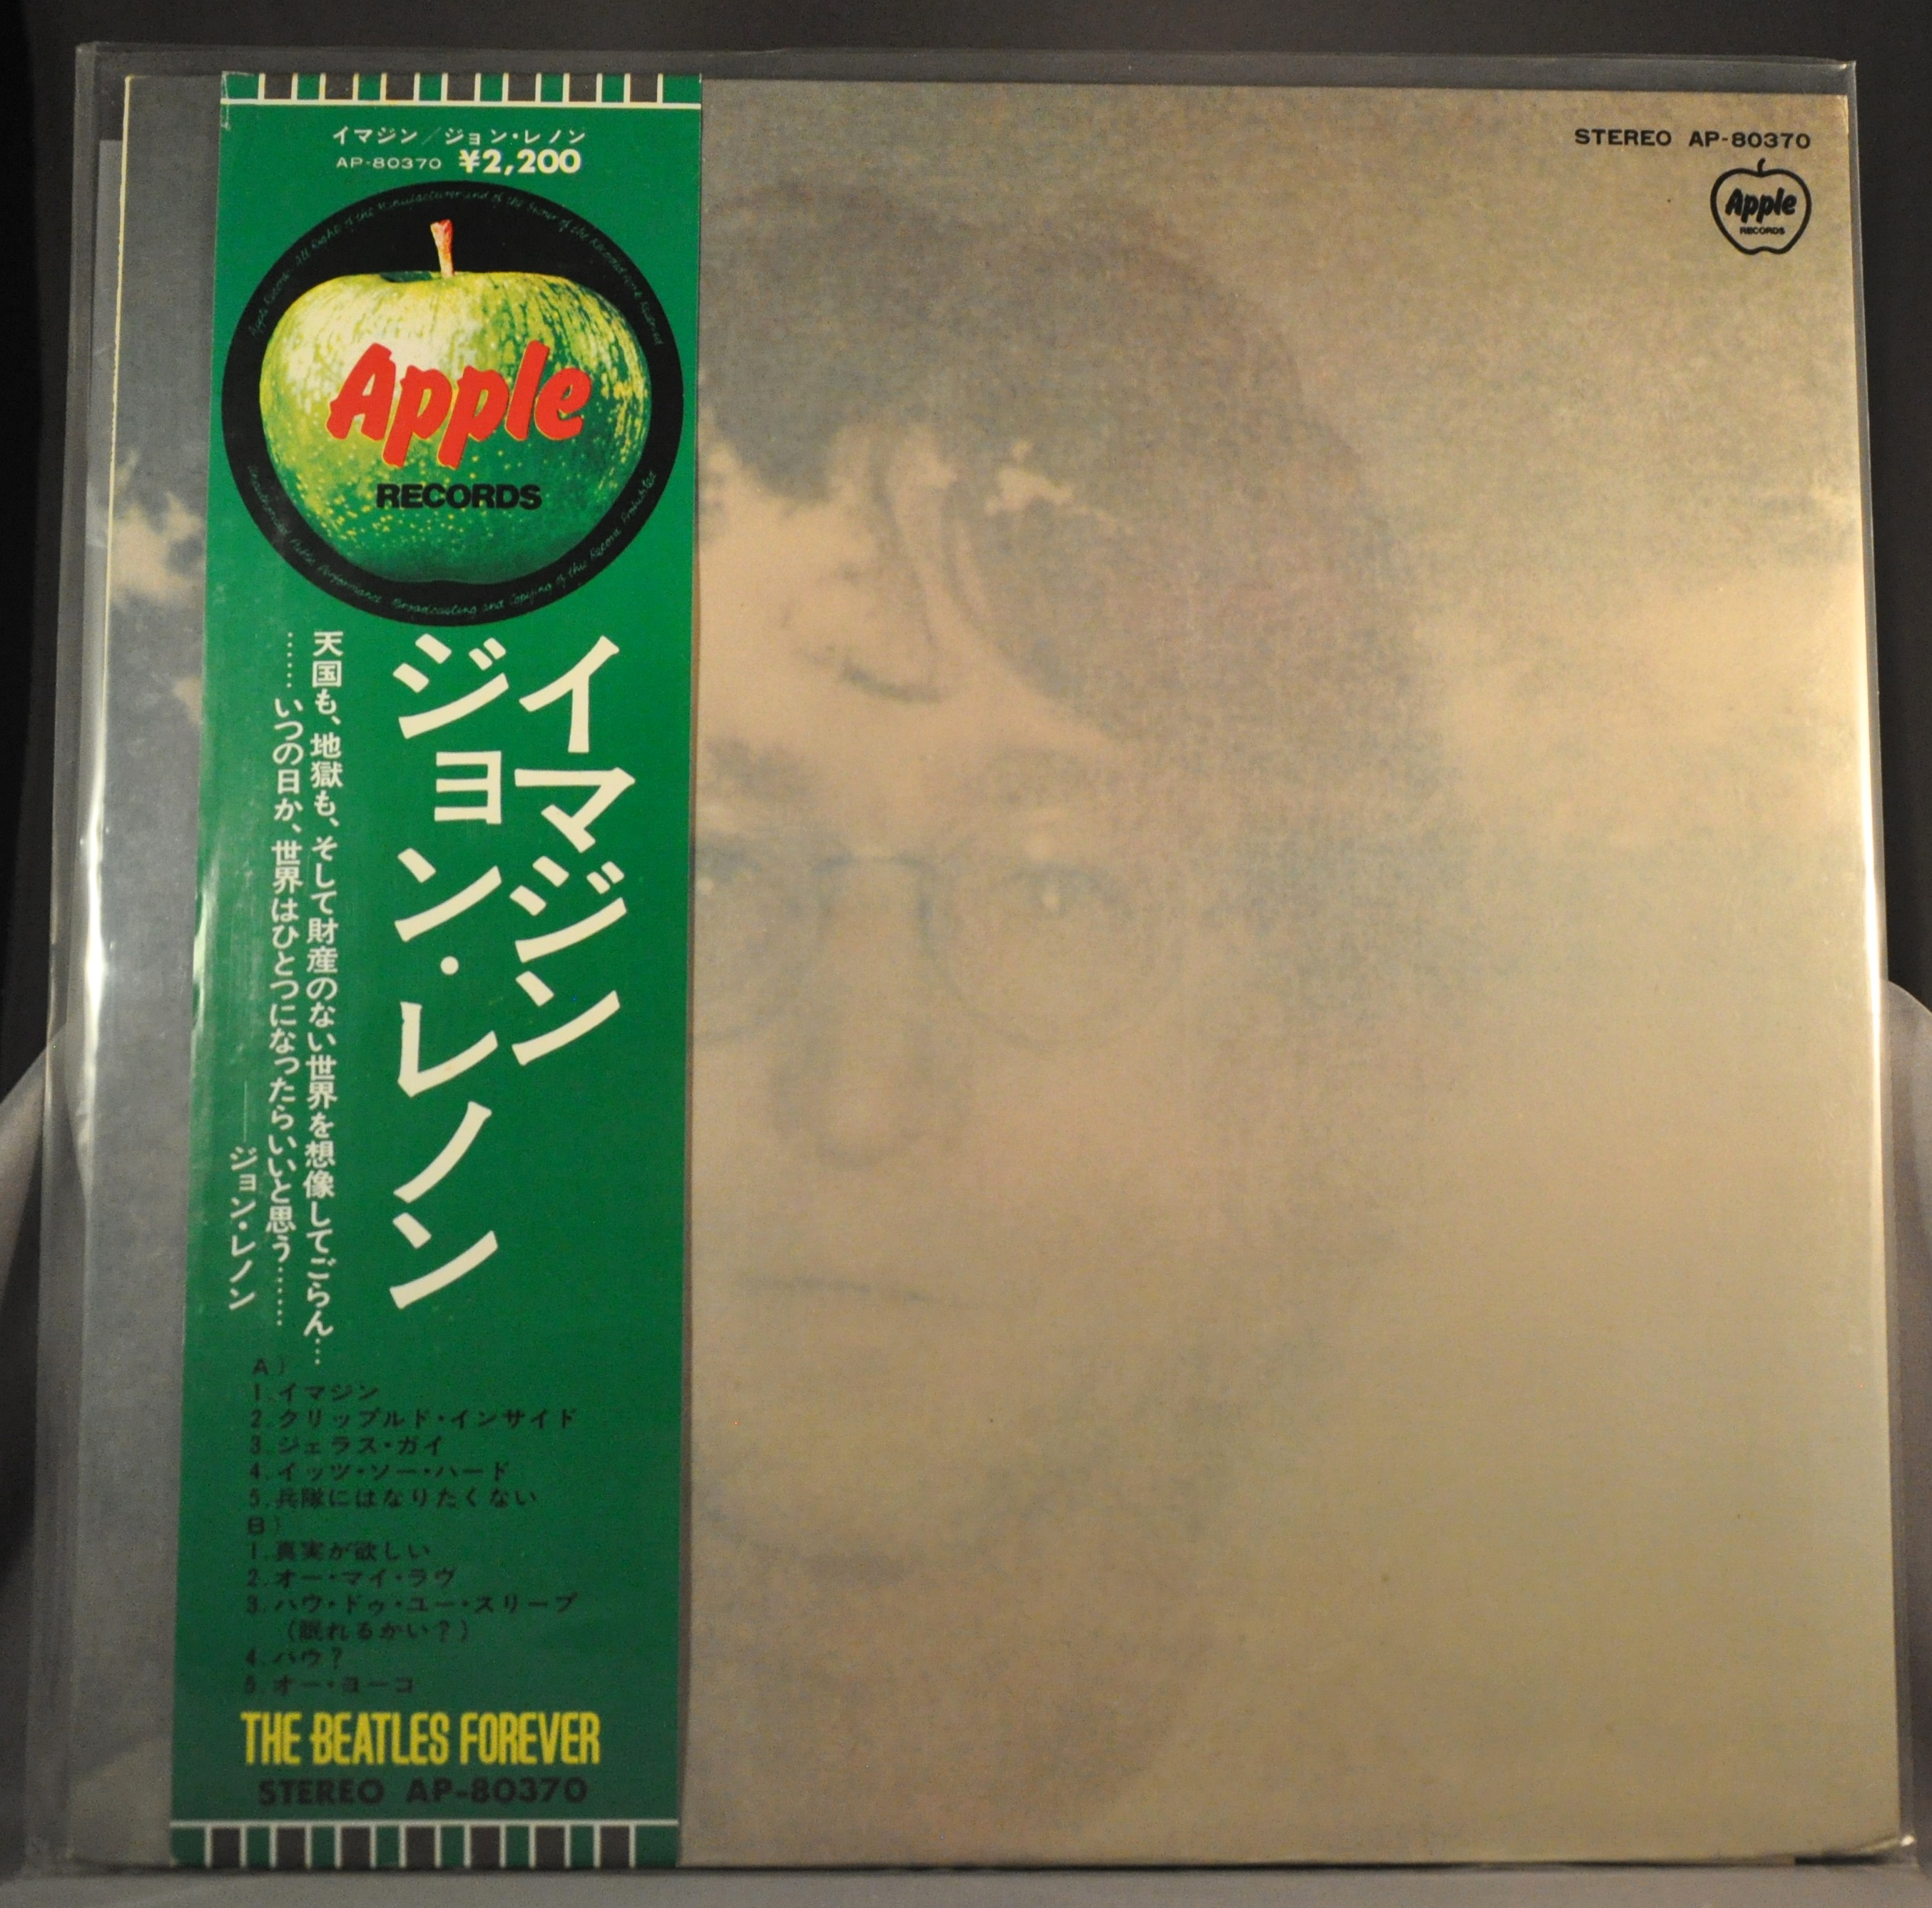 John Lennon Imagine Original 1973 Japan 12 Inch Vinyl Record In Glossy Cardboard Sleeve With Poster Insert Obi Apple Records Ap 80370 Condition Near Mint Nm Pert Neubees Music